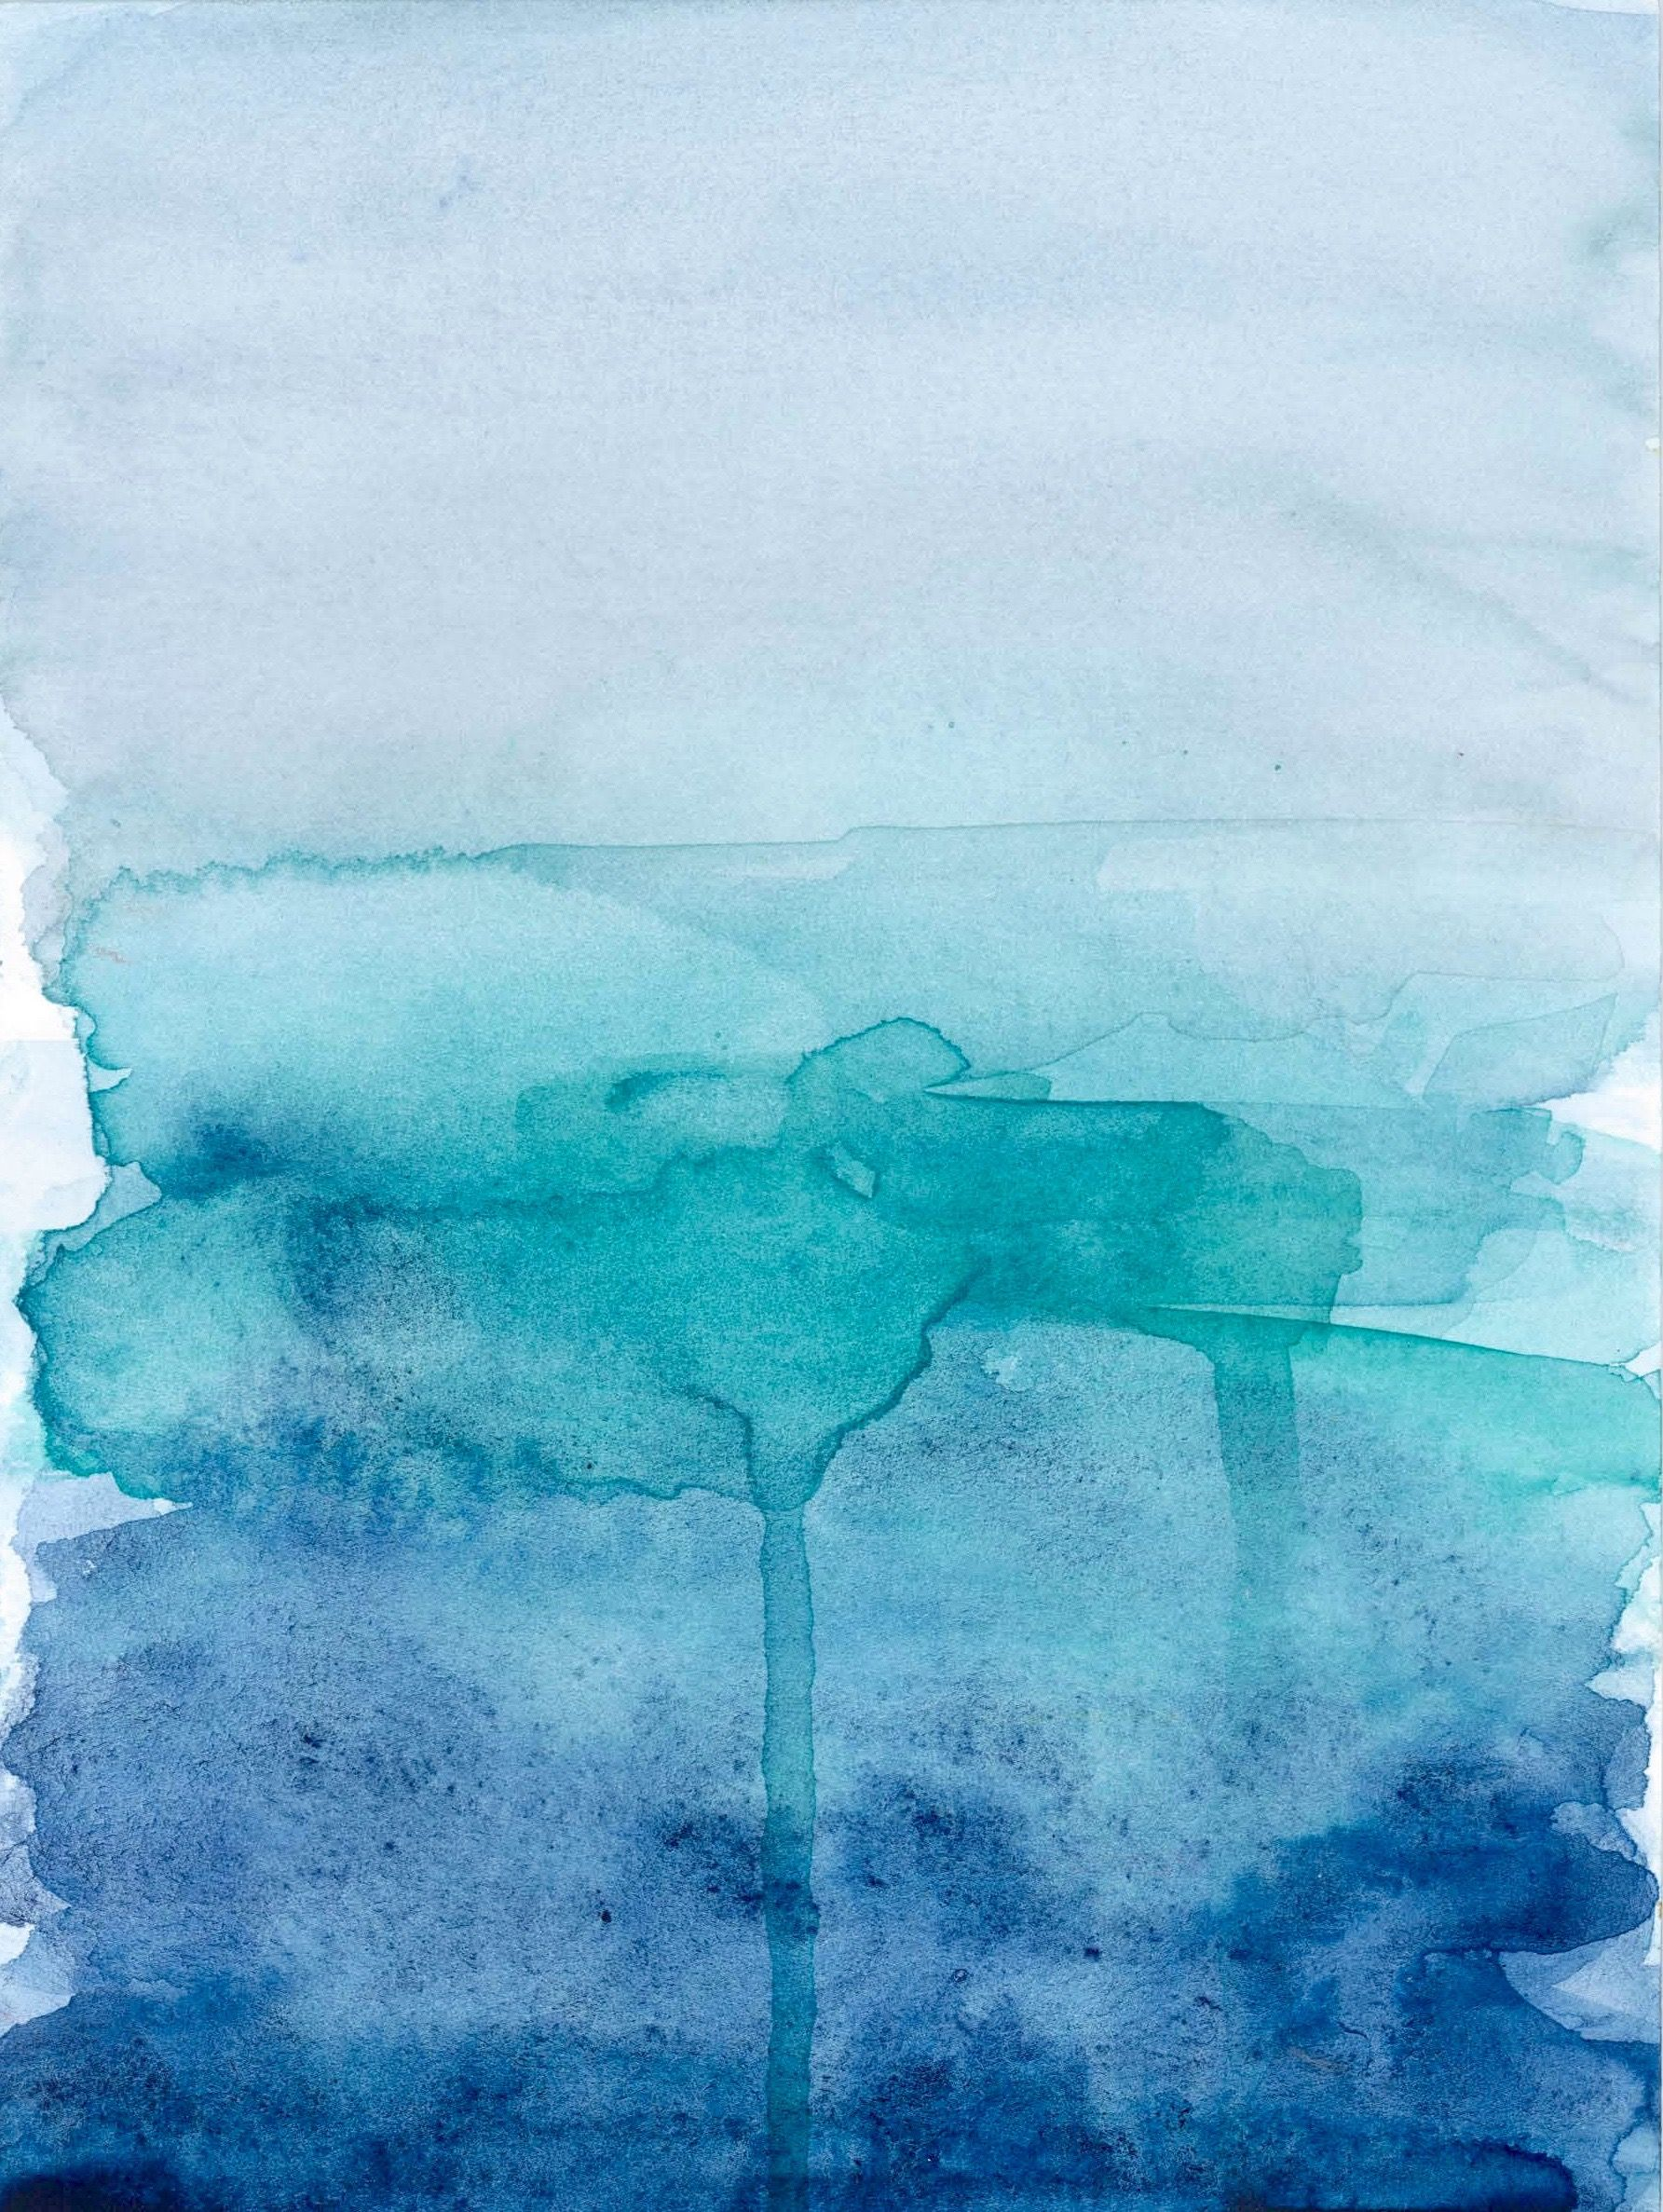 blue ombre watercolour | hey, peaches! art | Pinterest ...